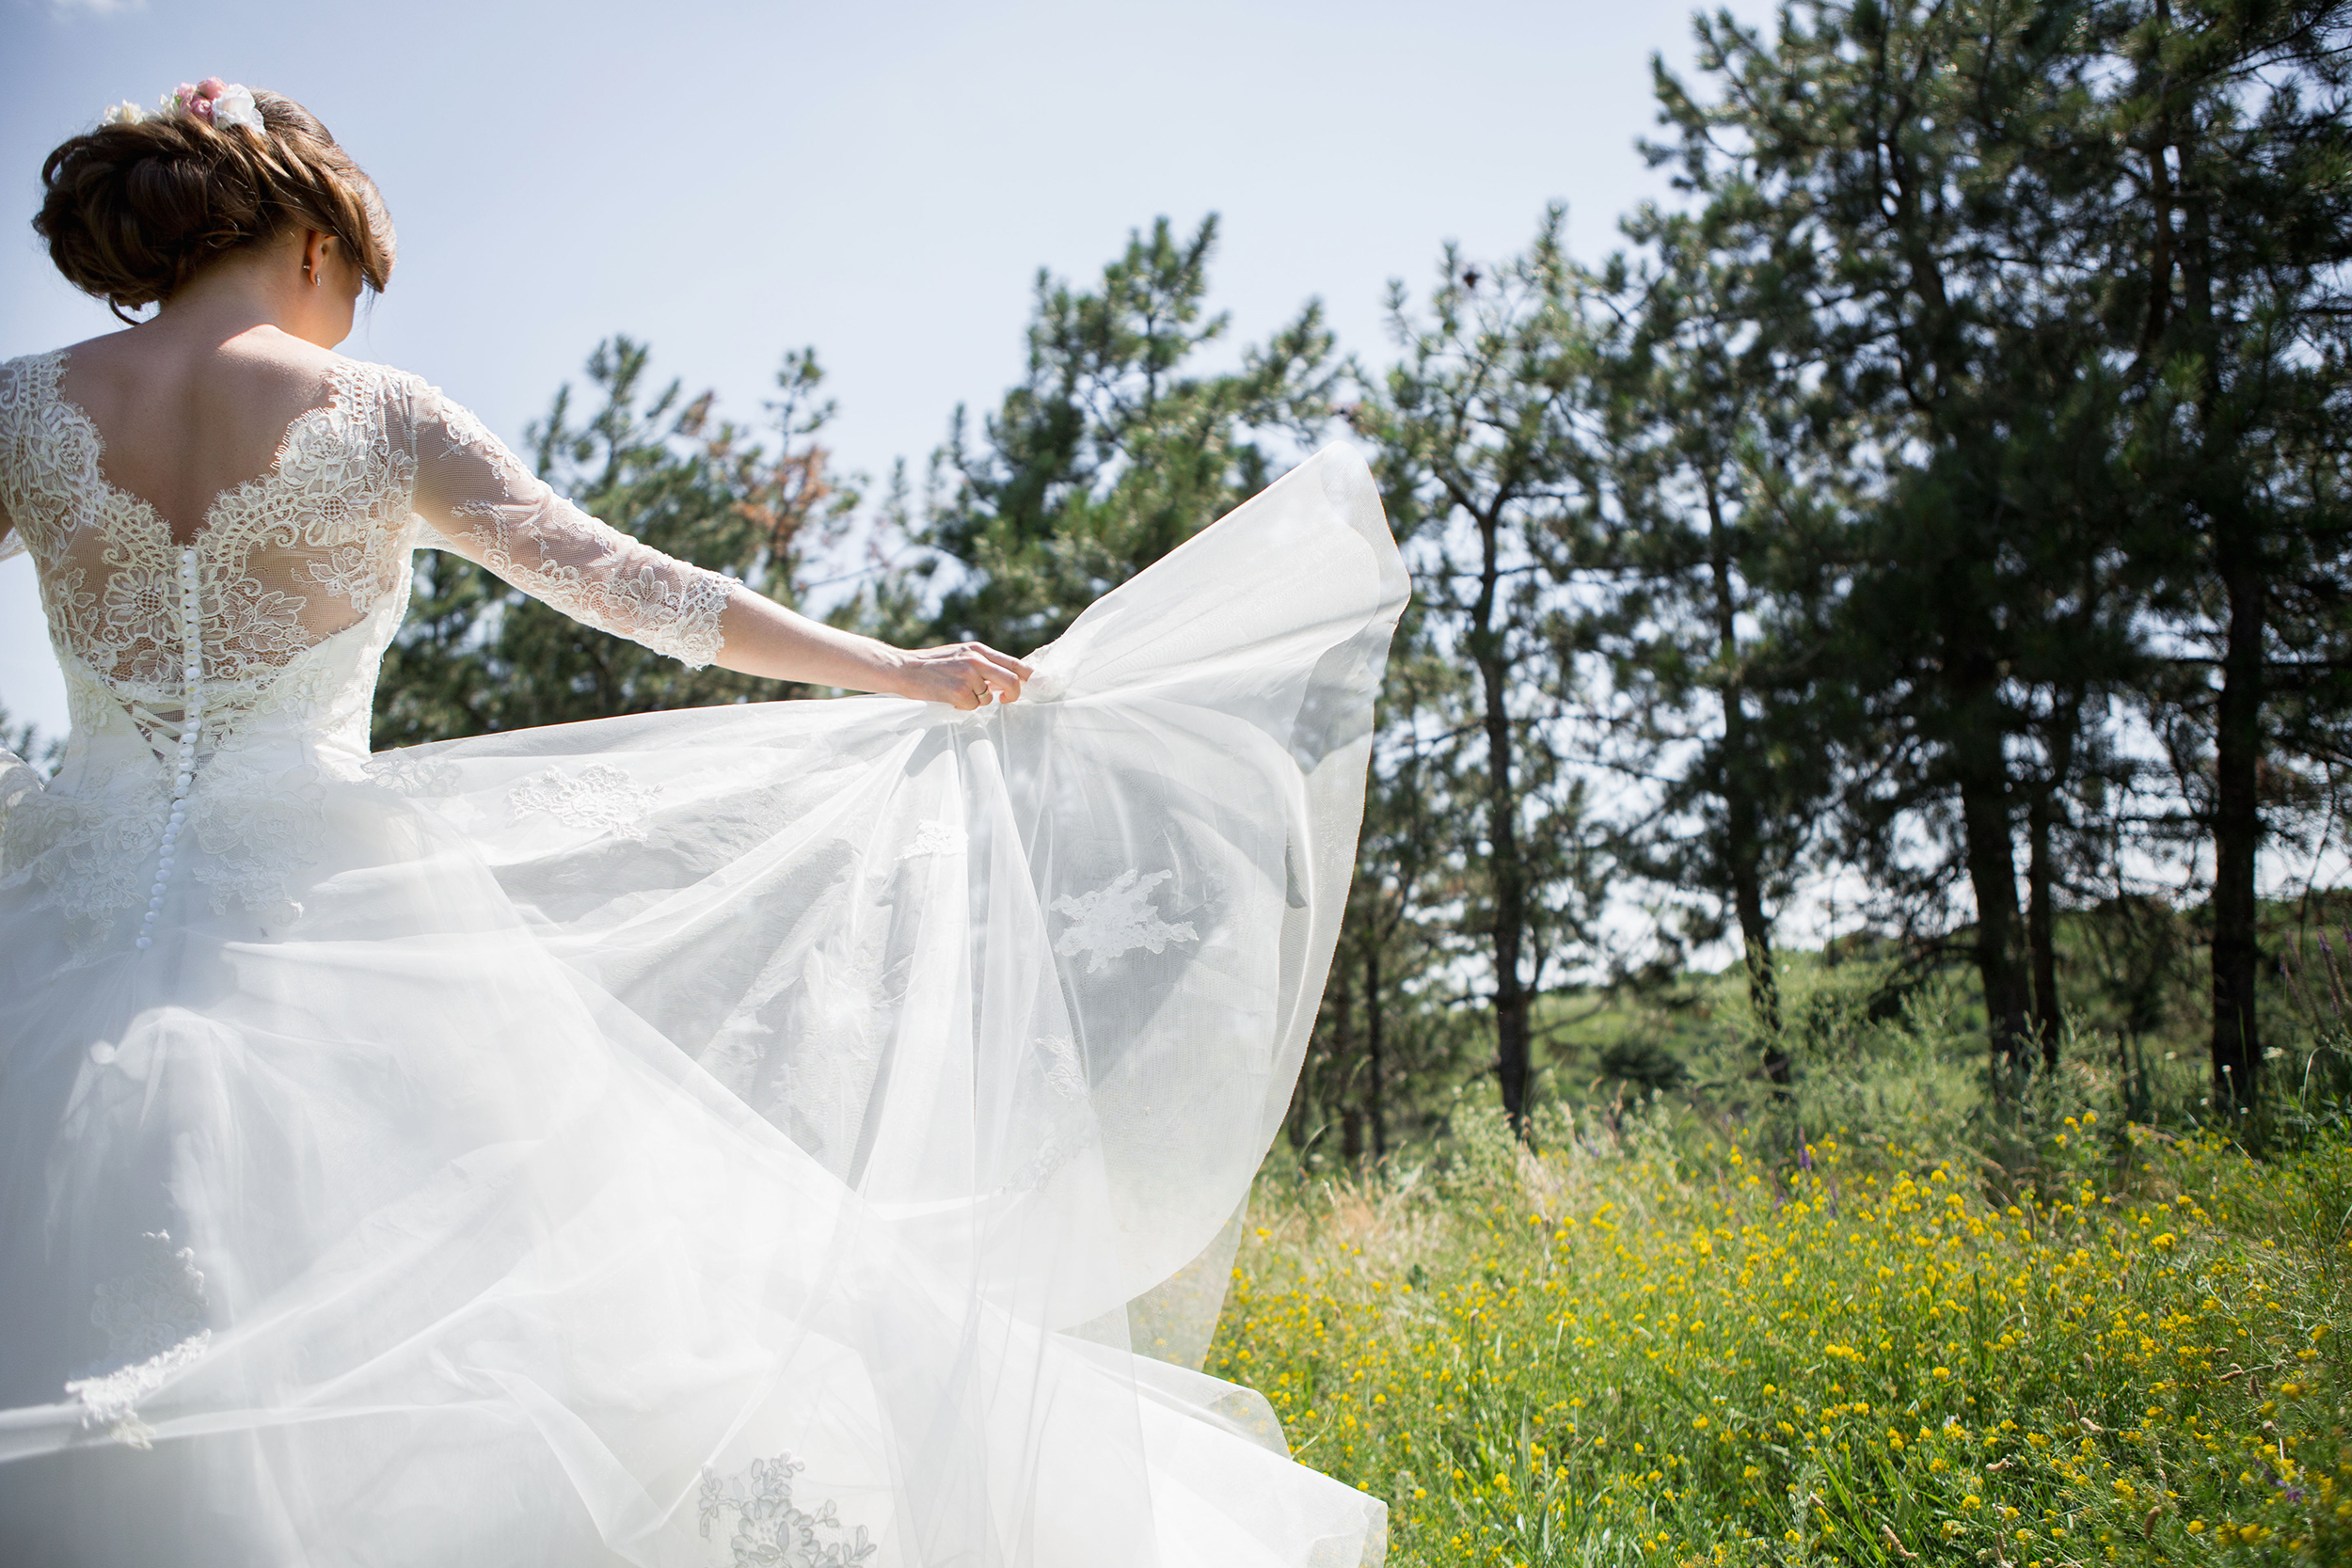 If you're planning a Spring wedding, make sure you look at Spring wedding dresses! Lace is a timeless look and will look gorgeous in the Spring time.